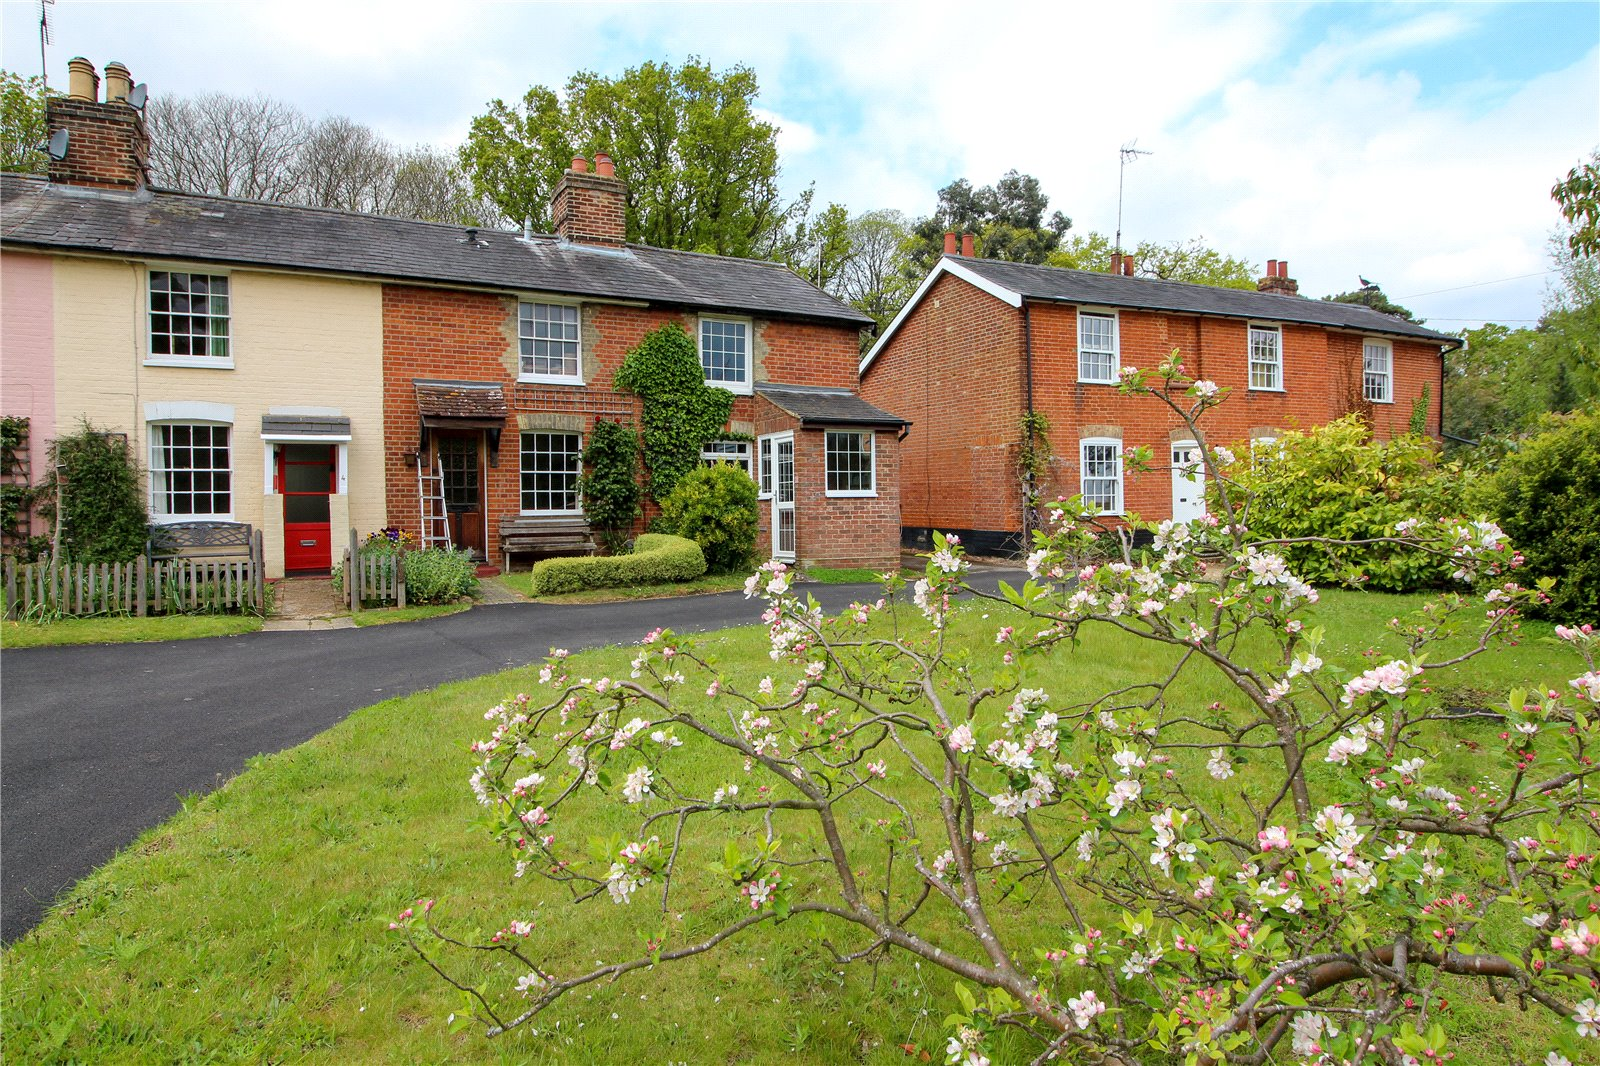 2 bed house for sale in Freston, Ipswich, IP9